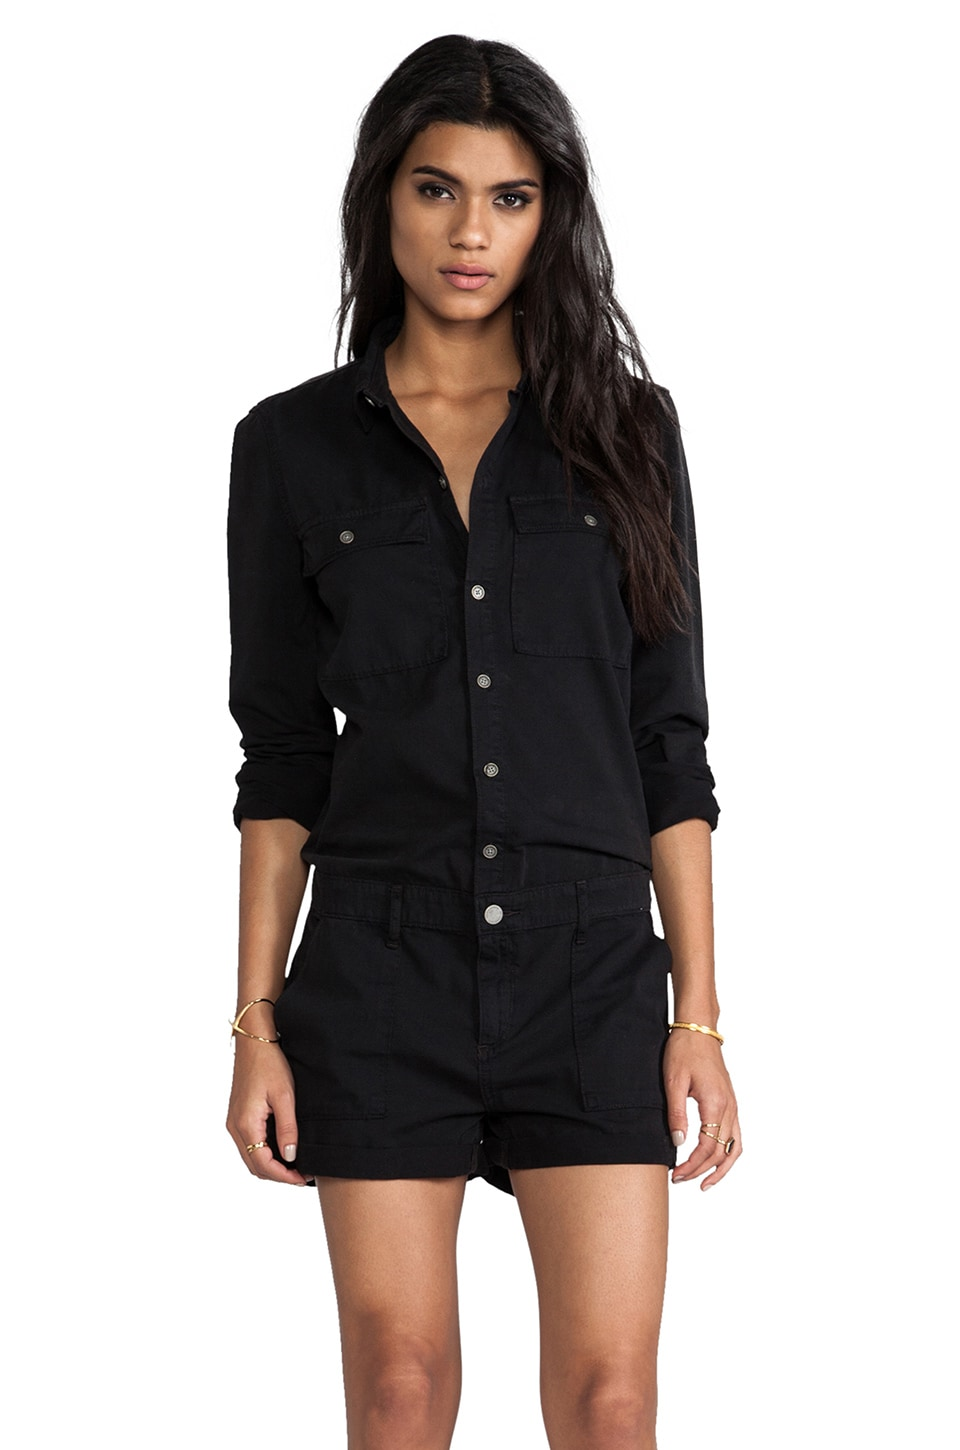 Paige Denim Jackson Romper in Vintage Black